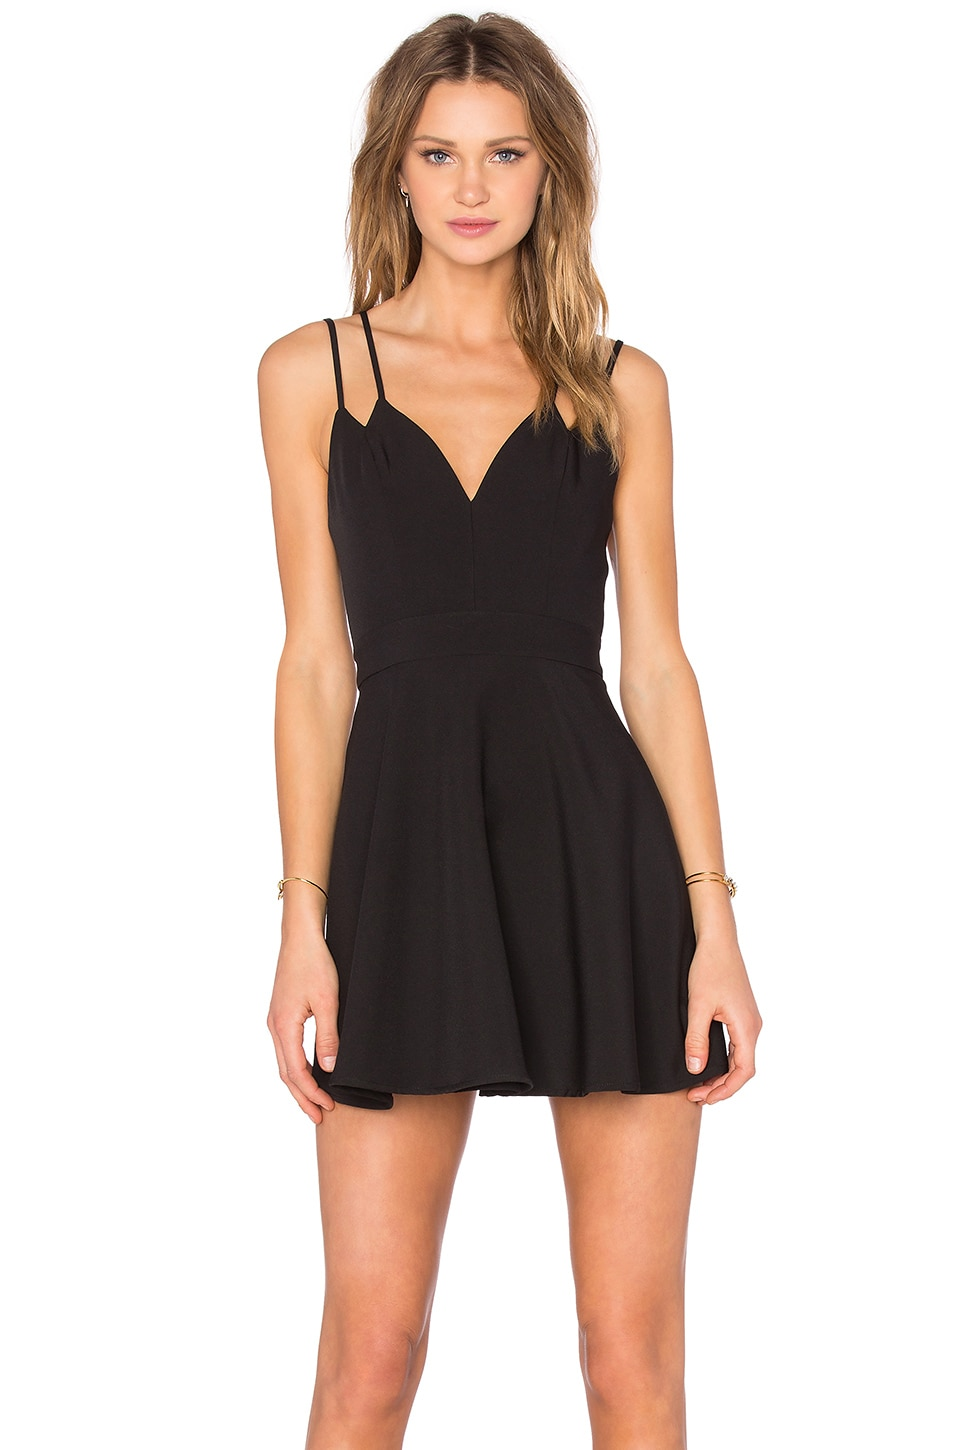 x Naven Twins Party Girl Fit & Flare Dress